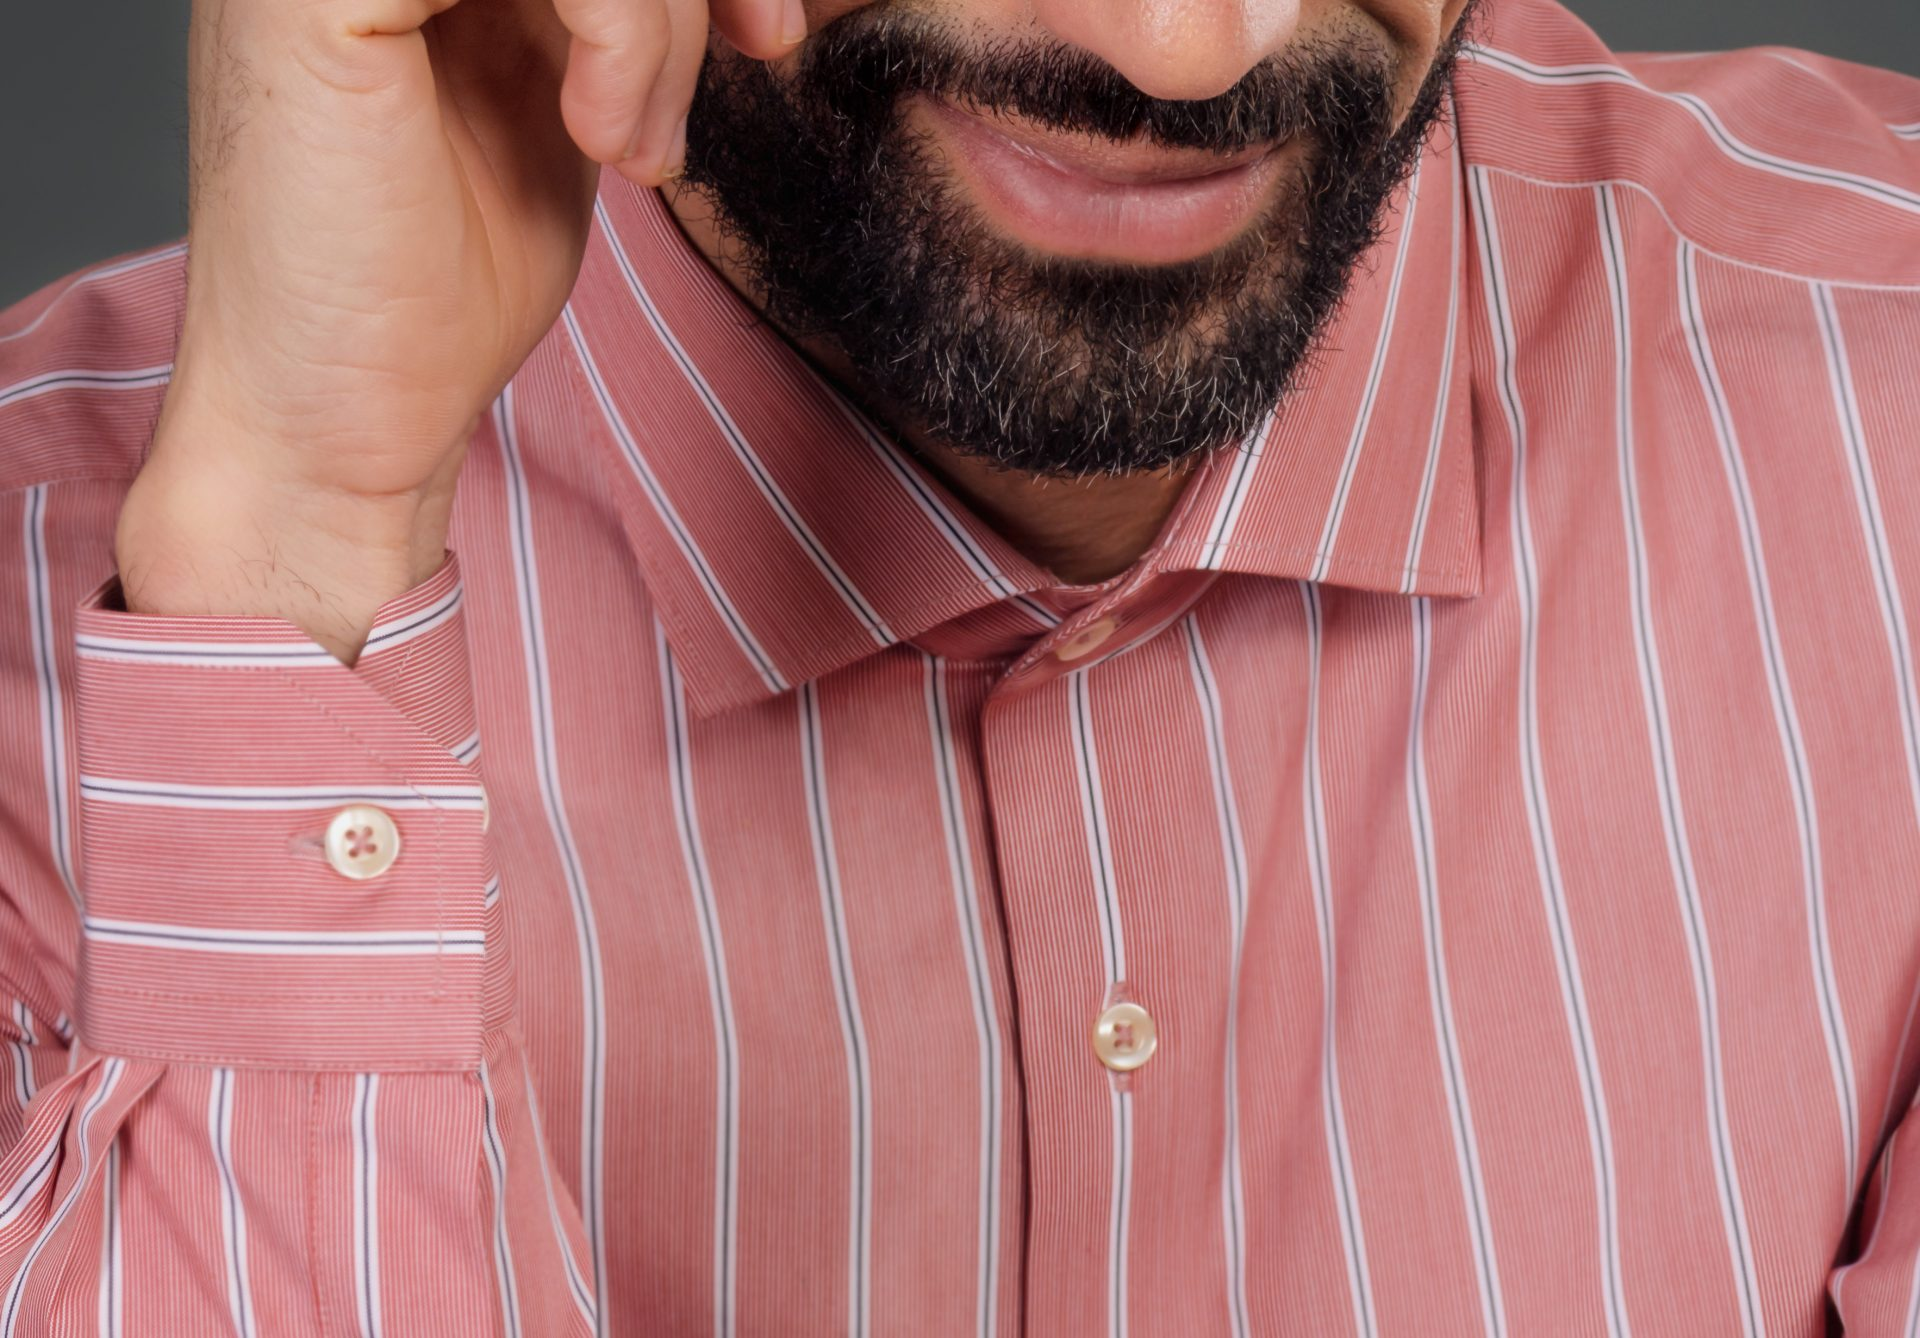 Bombay Shirt Company Bespoke Custom Shirts Made in India - Top Indie Label